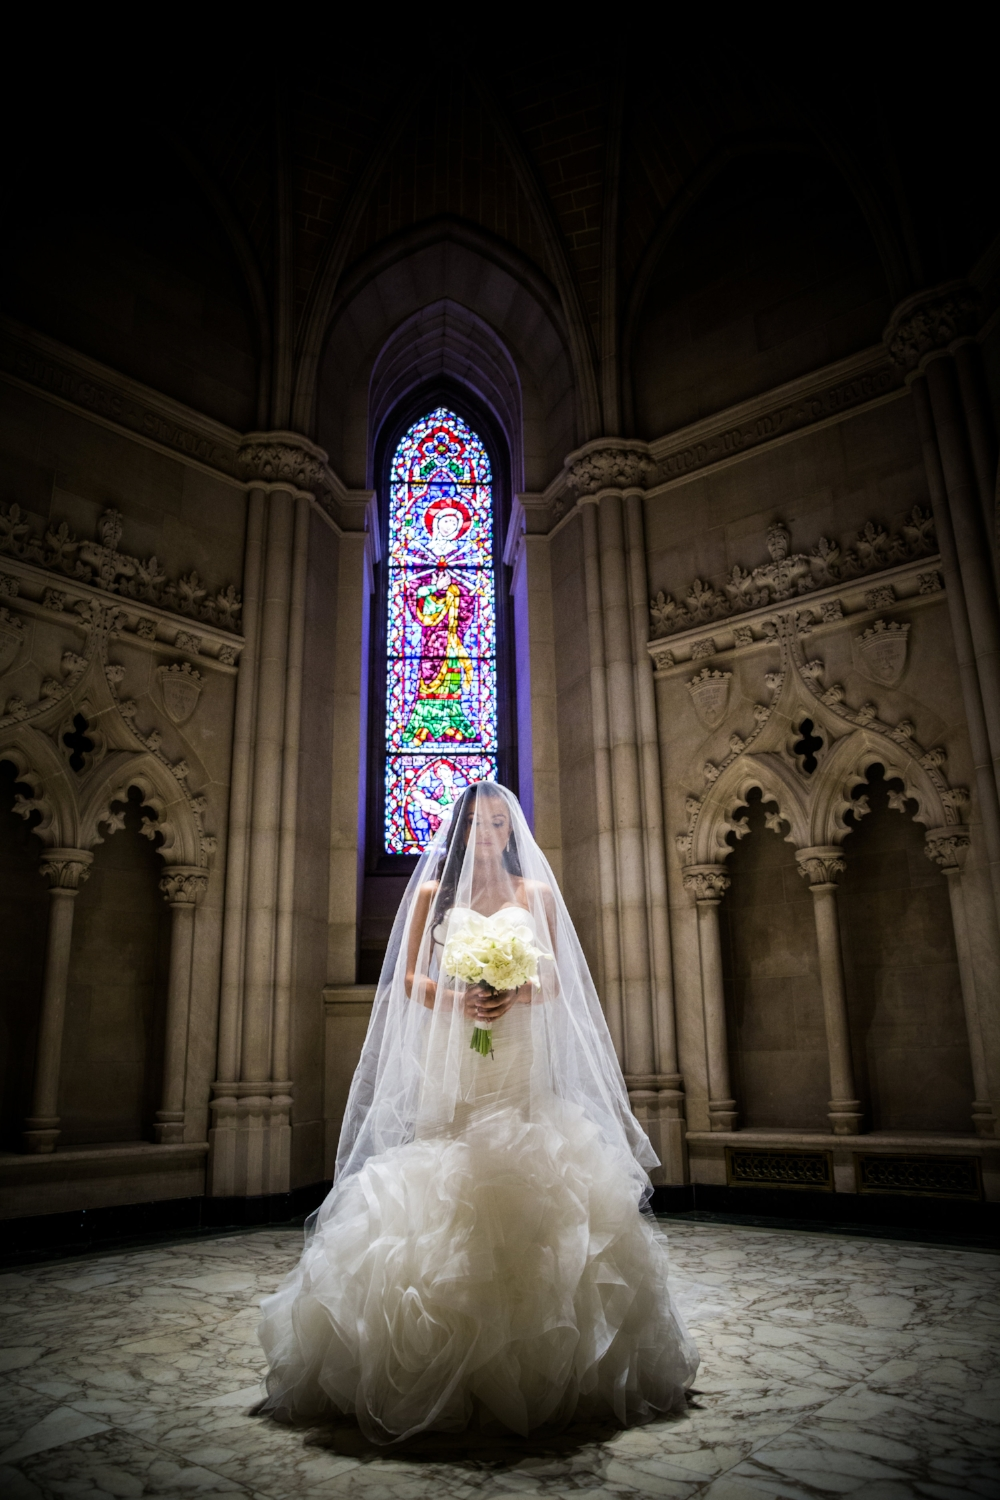 One of the most breathtaking shots in my design career taken at Cathedral Basilica of the Sacred Heart by The Bleu Studio.